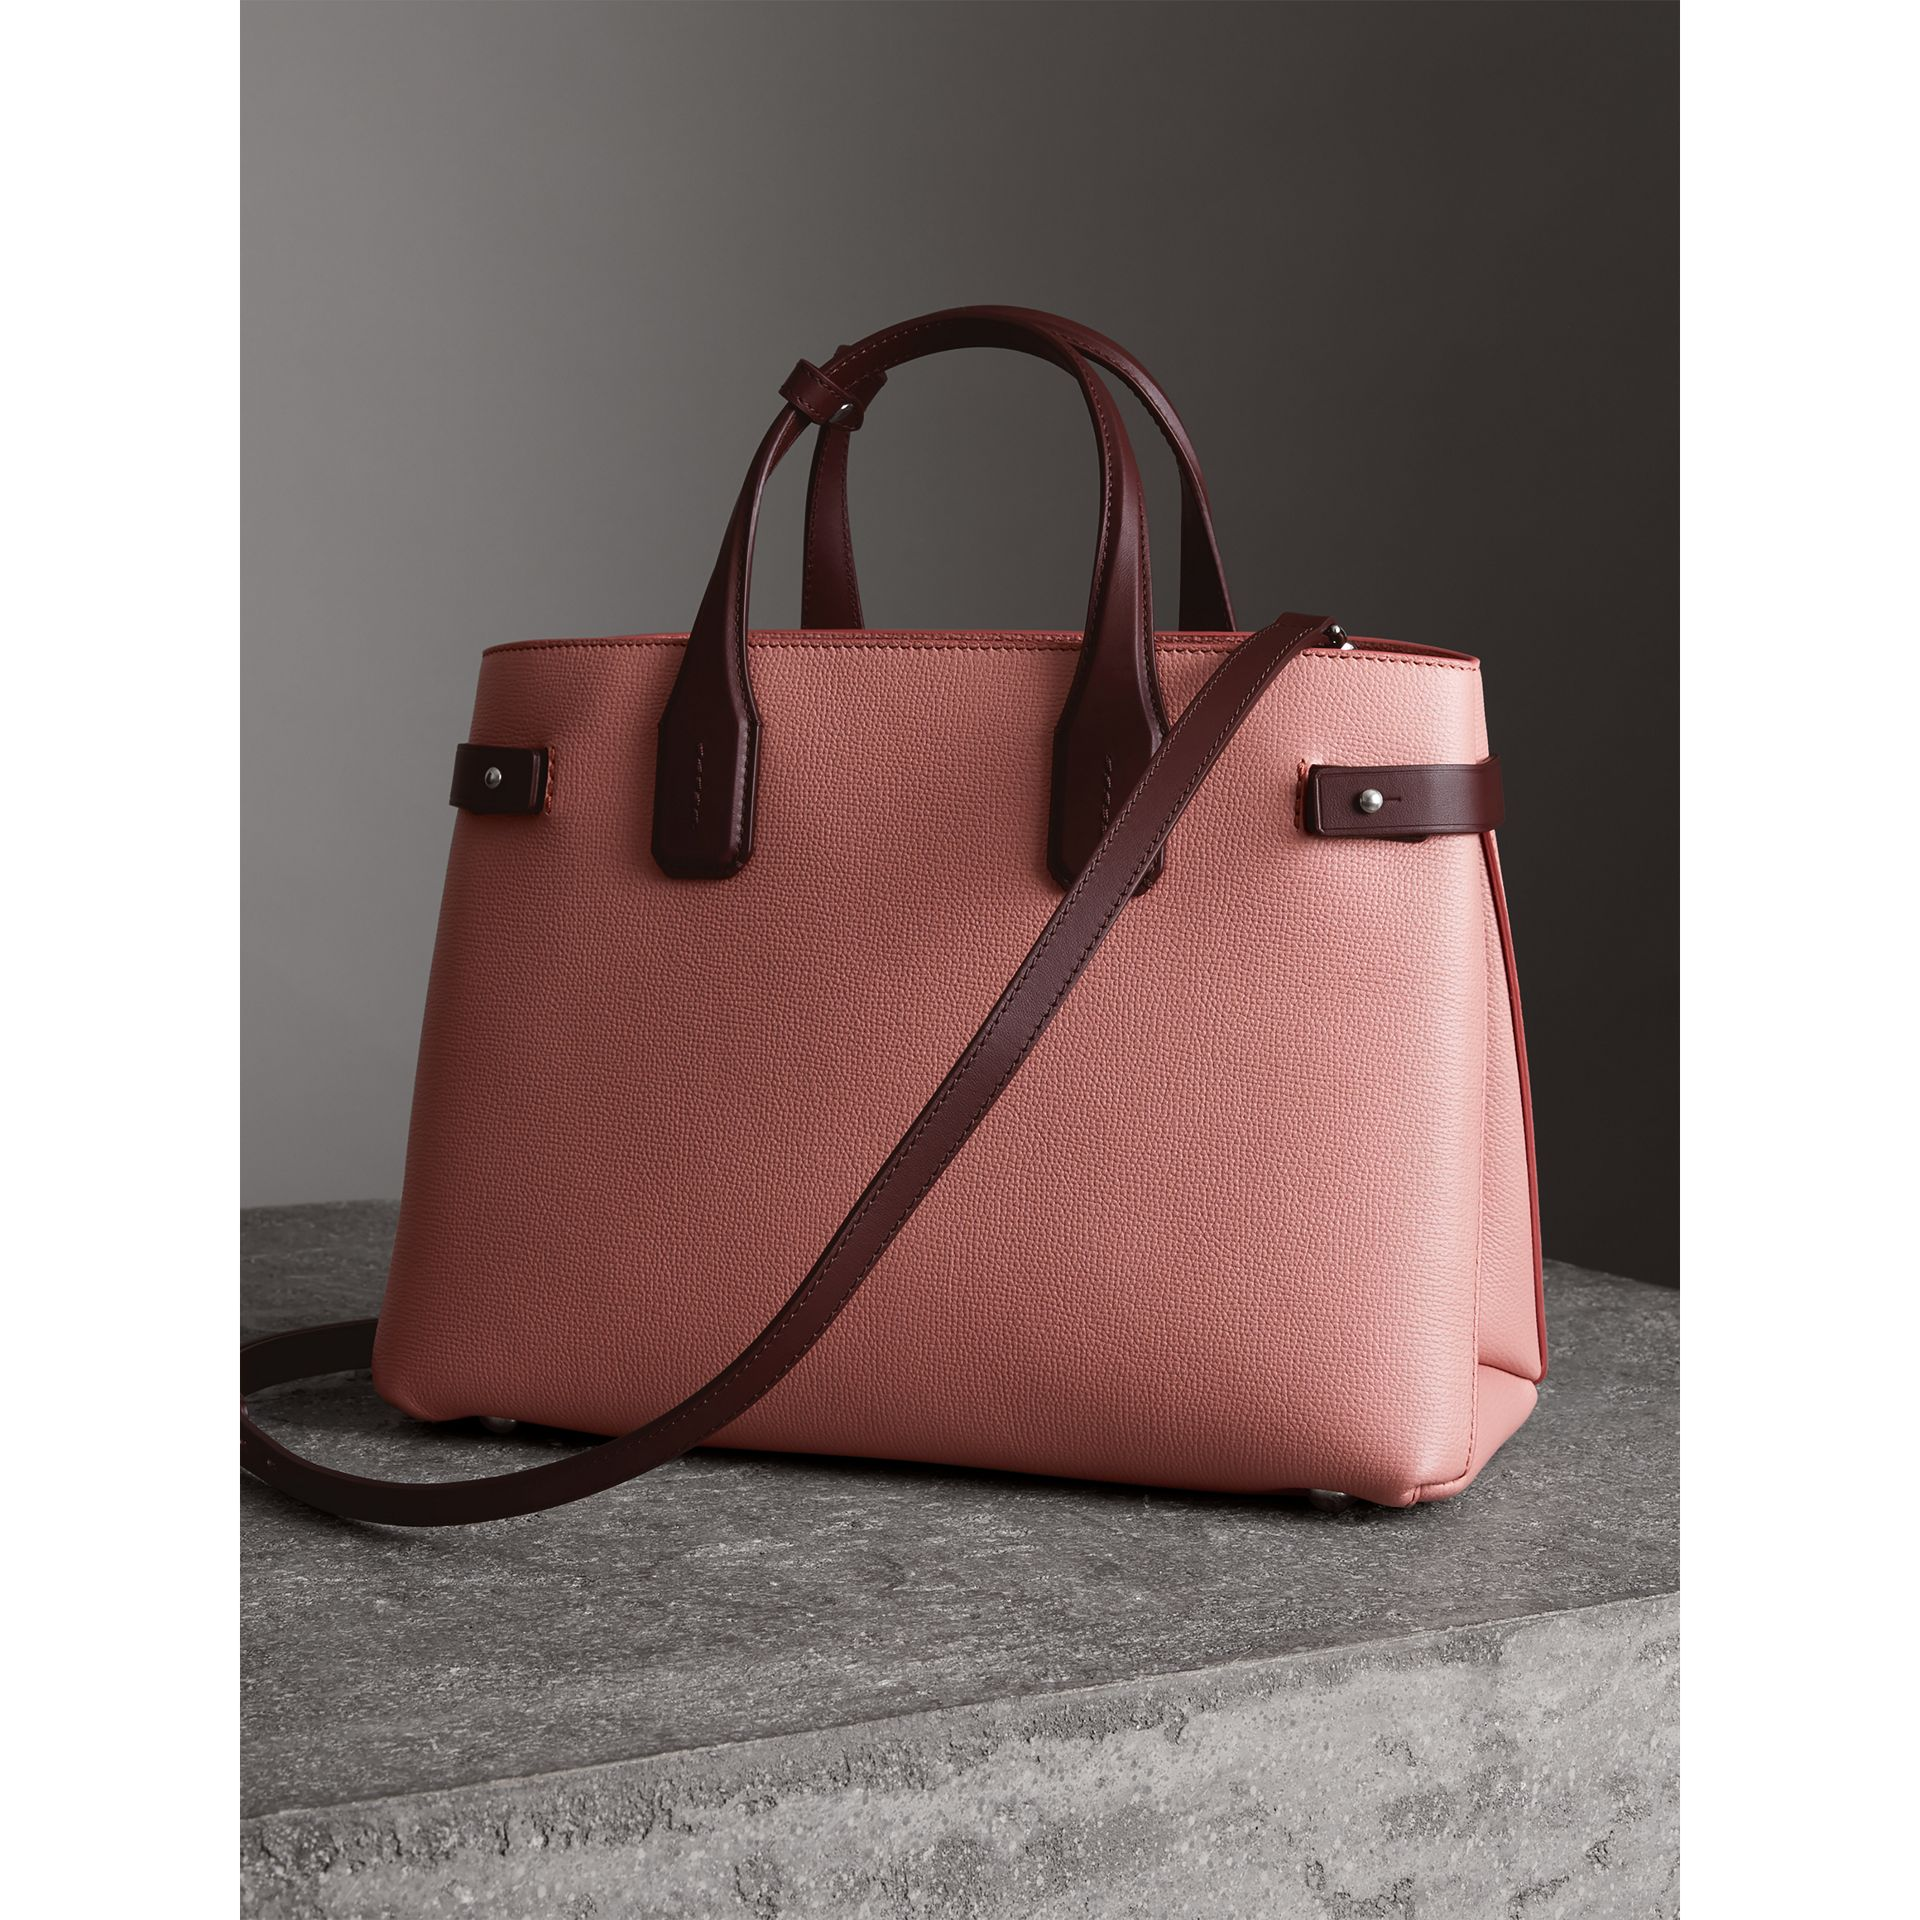 Sac The Banner moyen en cuir bicolore (Rose Cendré/bordeaux Intense) - Femme | Burberry - photo de la galerie 2